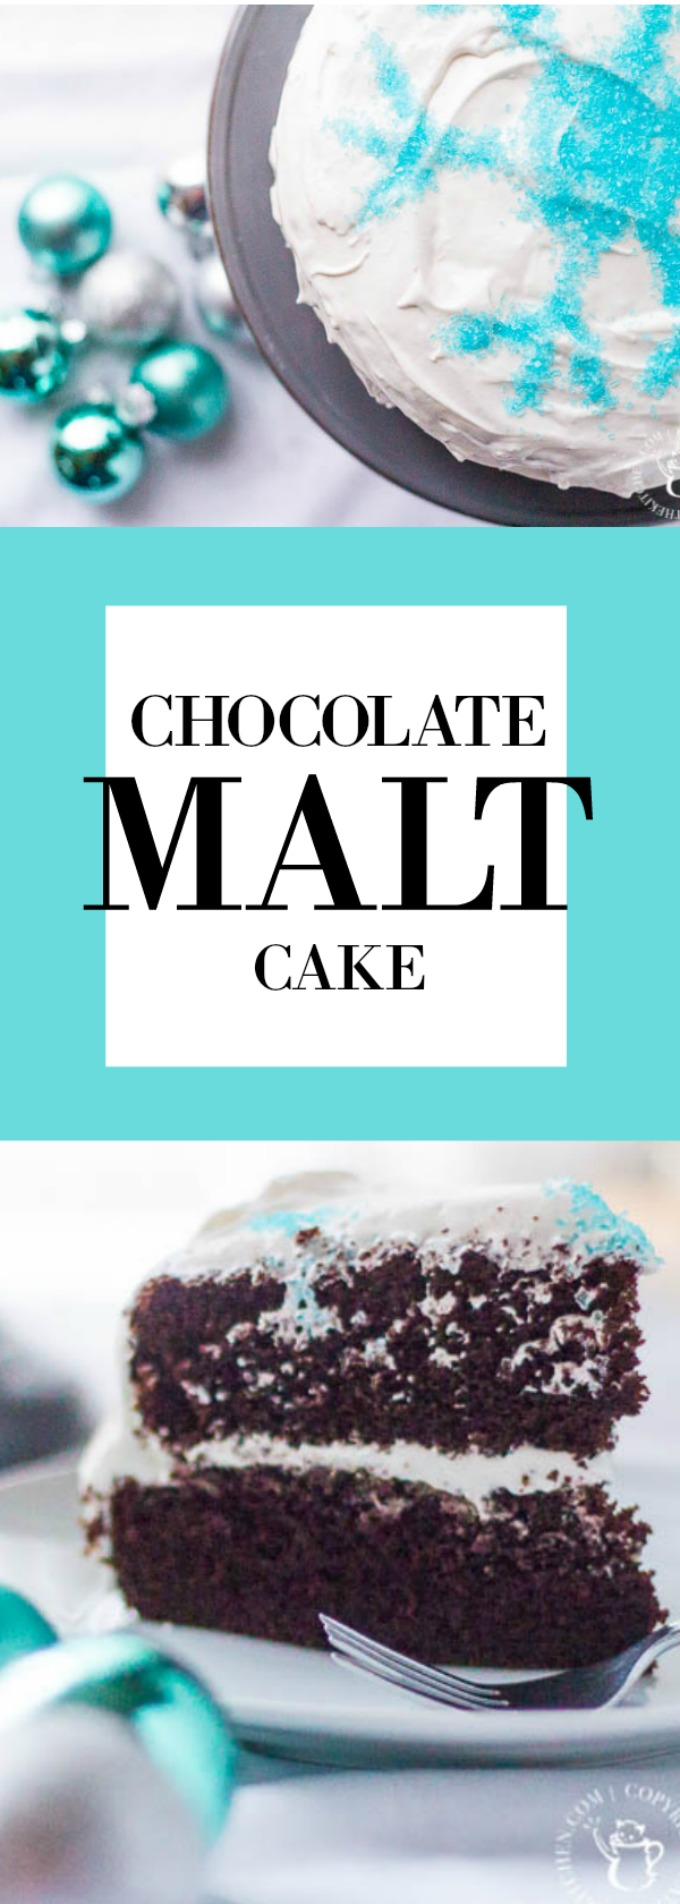 It's chocolate cake with a little subtle something extra! Perfect for any birthday or holiday celebration, this chocolate malt cake is delicious!